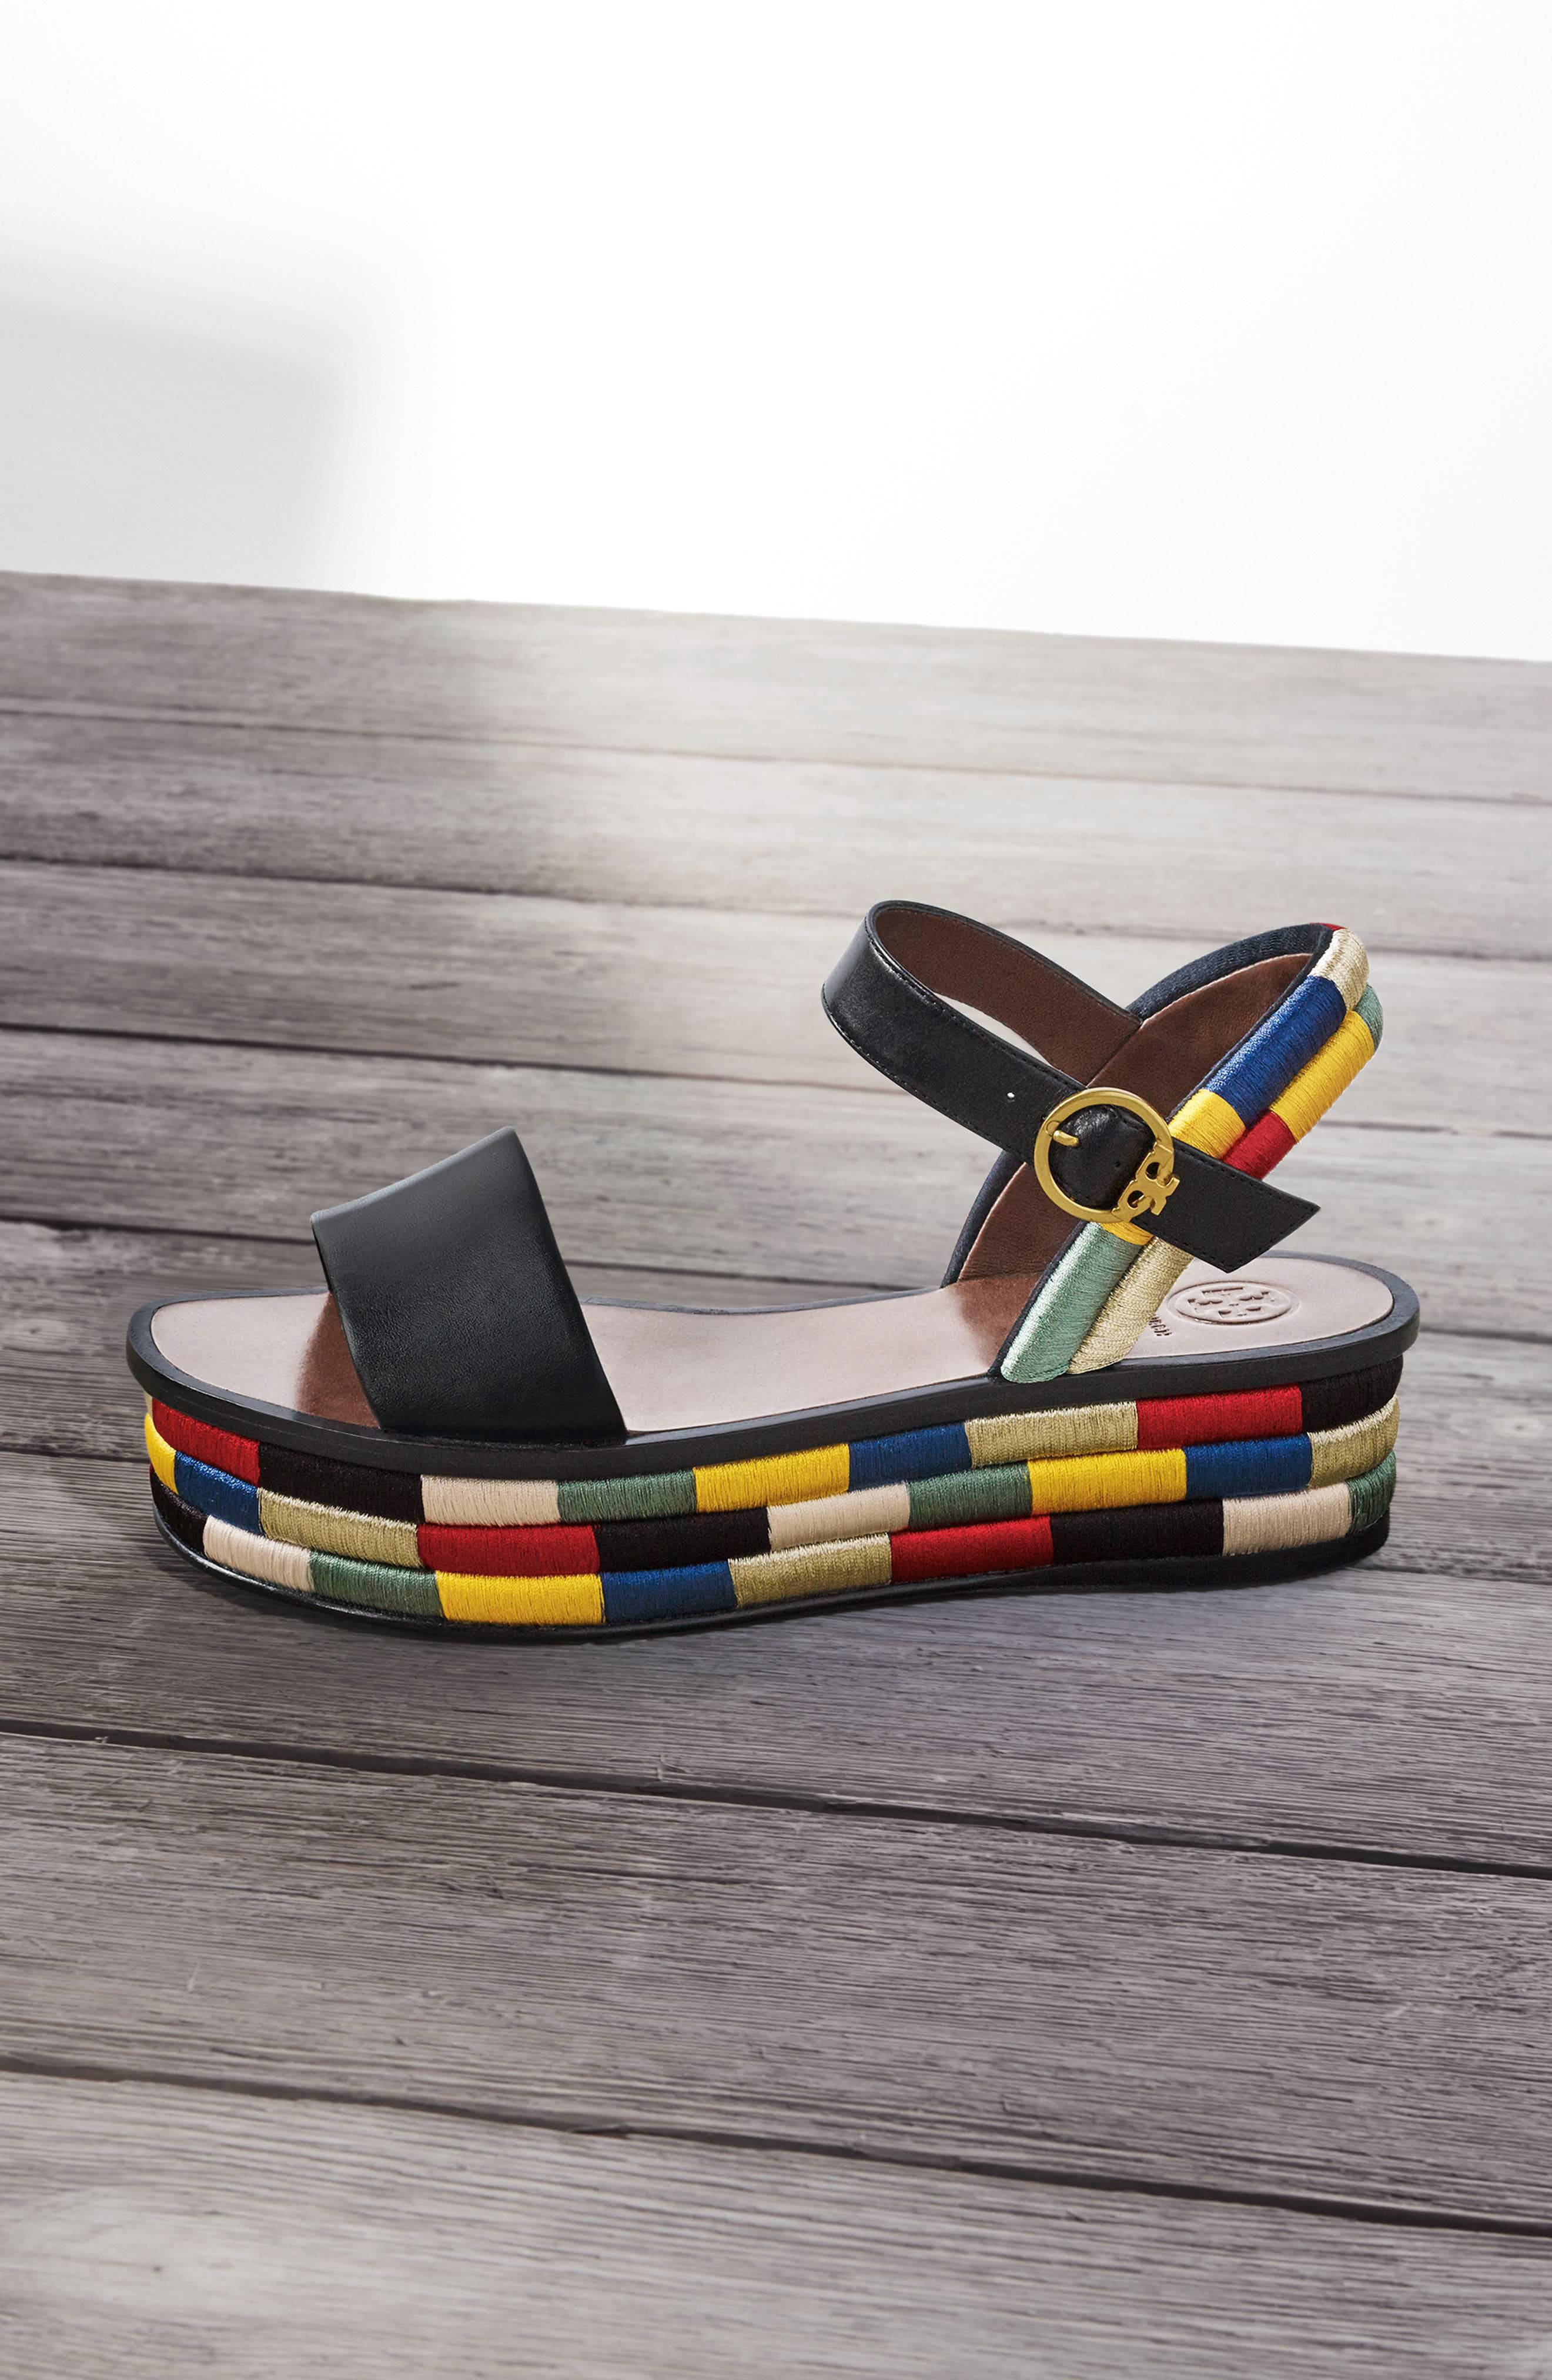 Camilla Platform Sandal,                             Alternate thumbnail 7, color,                             001